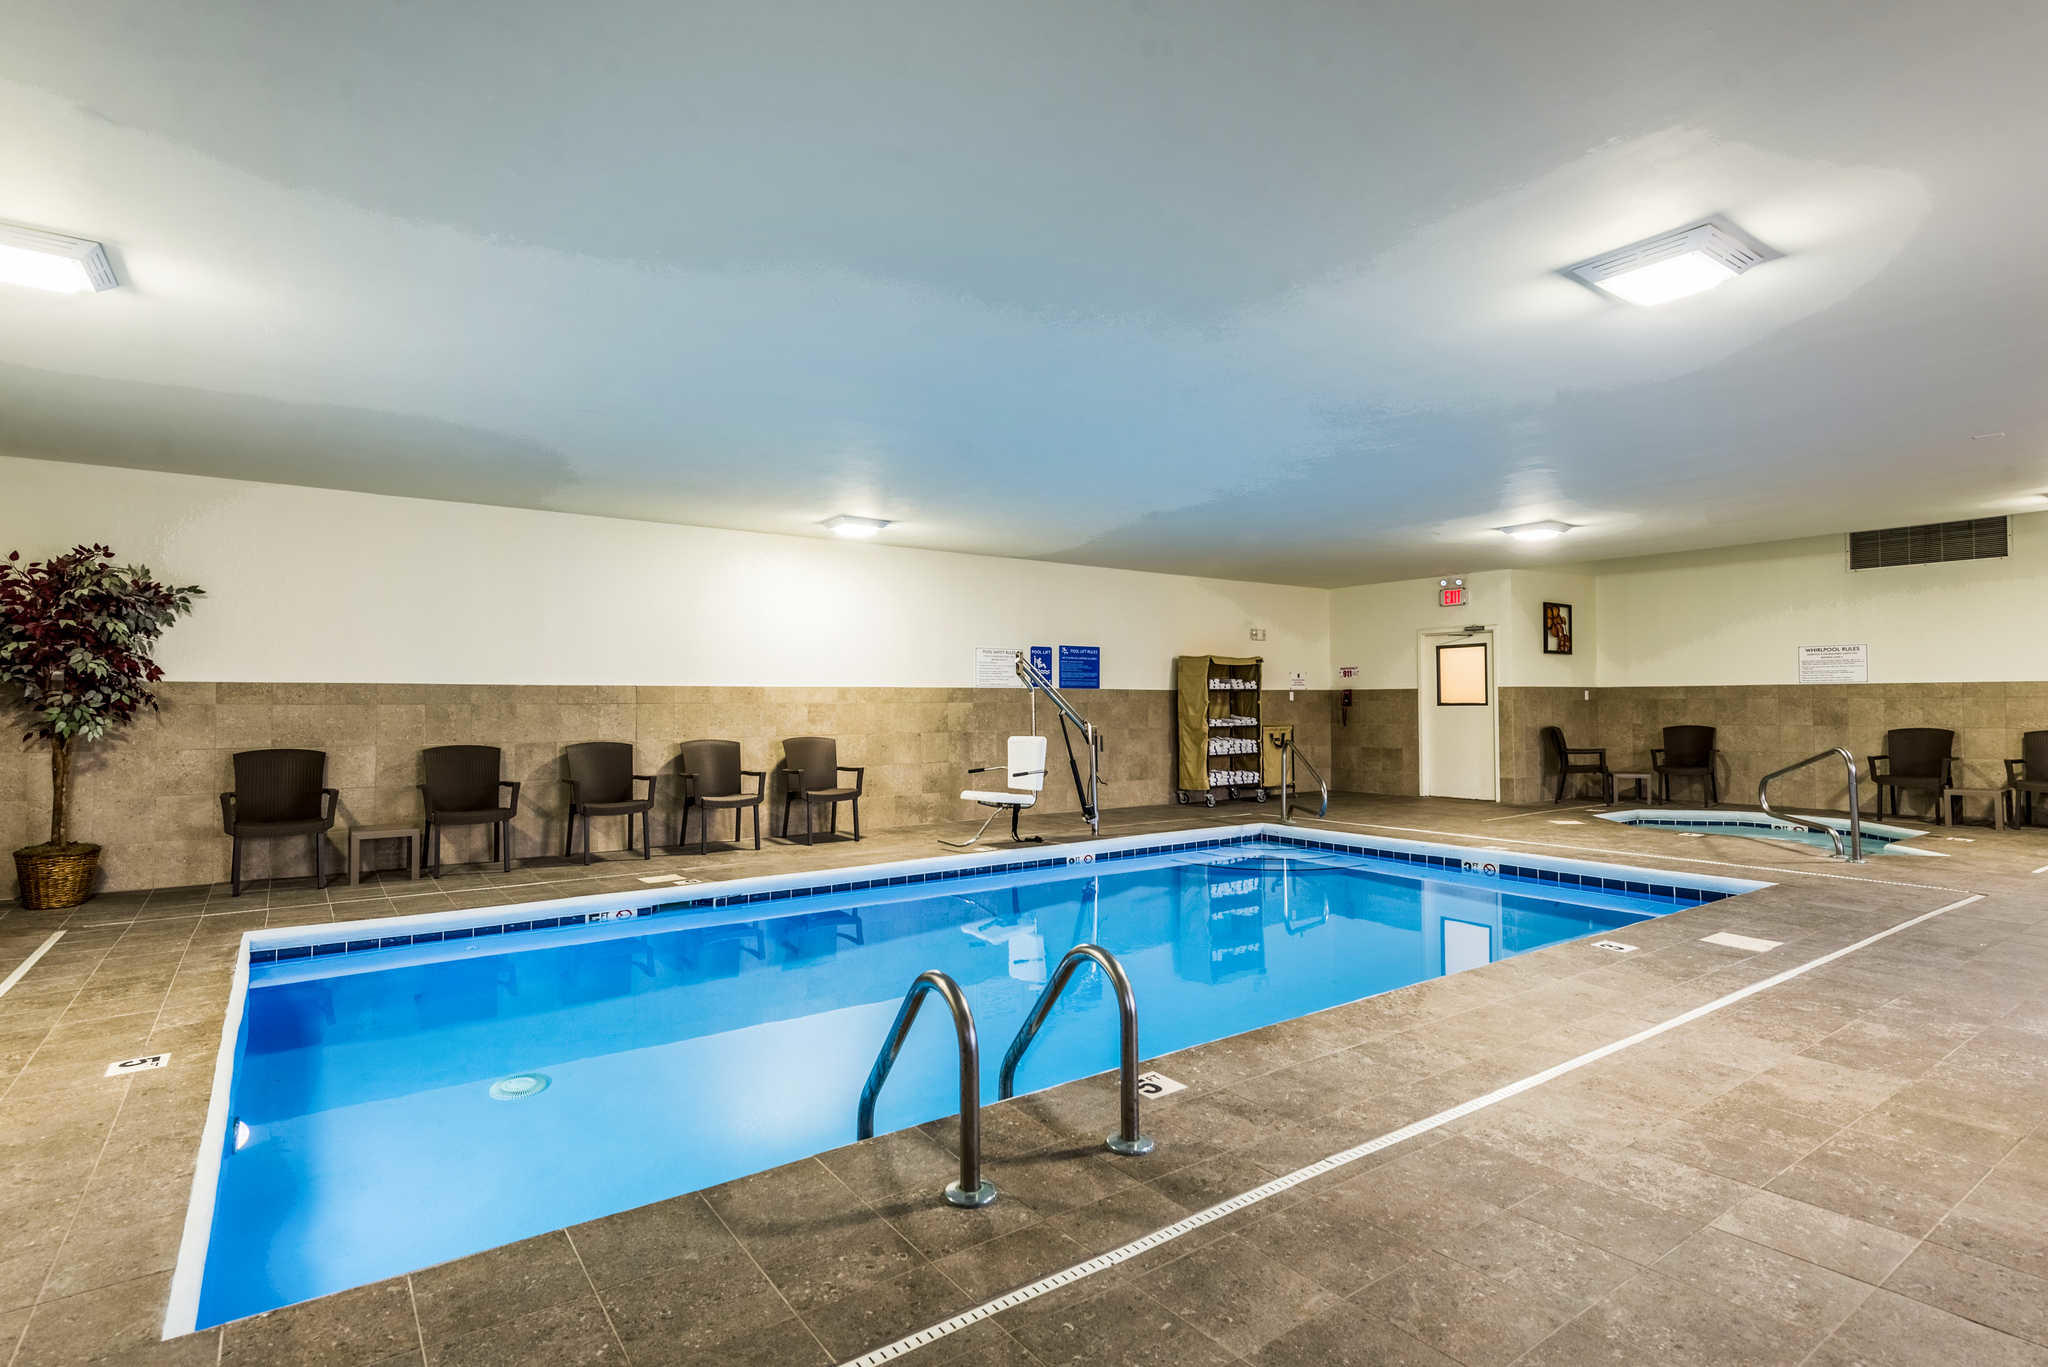 Hotel Rooms Near Me With Indoor Pool Decorating Interior Of Your House